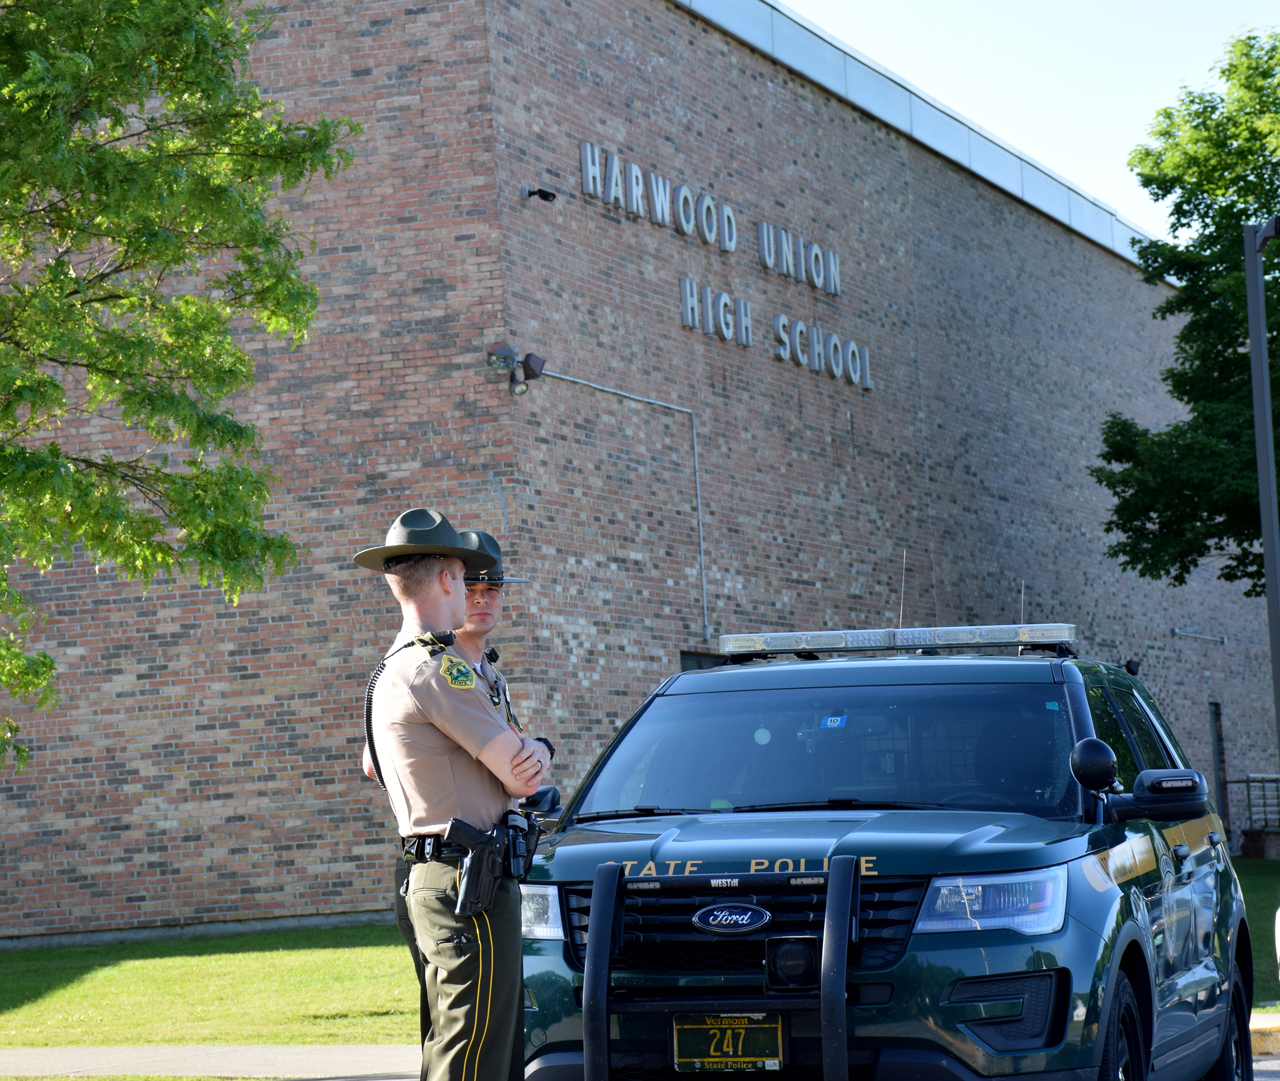 Vermont State Police Sgt. Doll and Tpr. Burrows at Harwood Union High School in Duxbury Wednesday, June 13. Photo: Jeff Knight